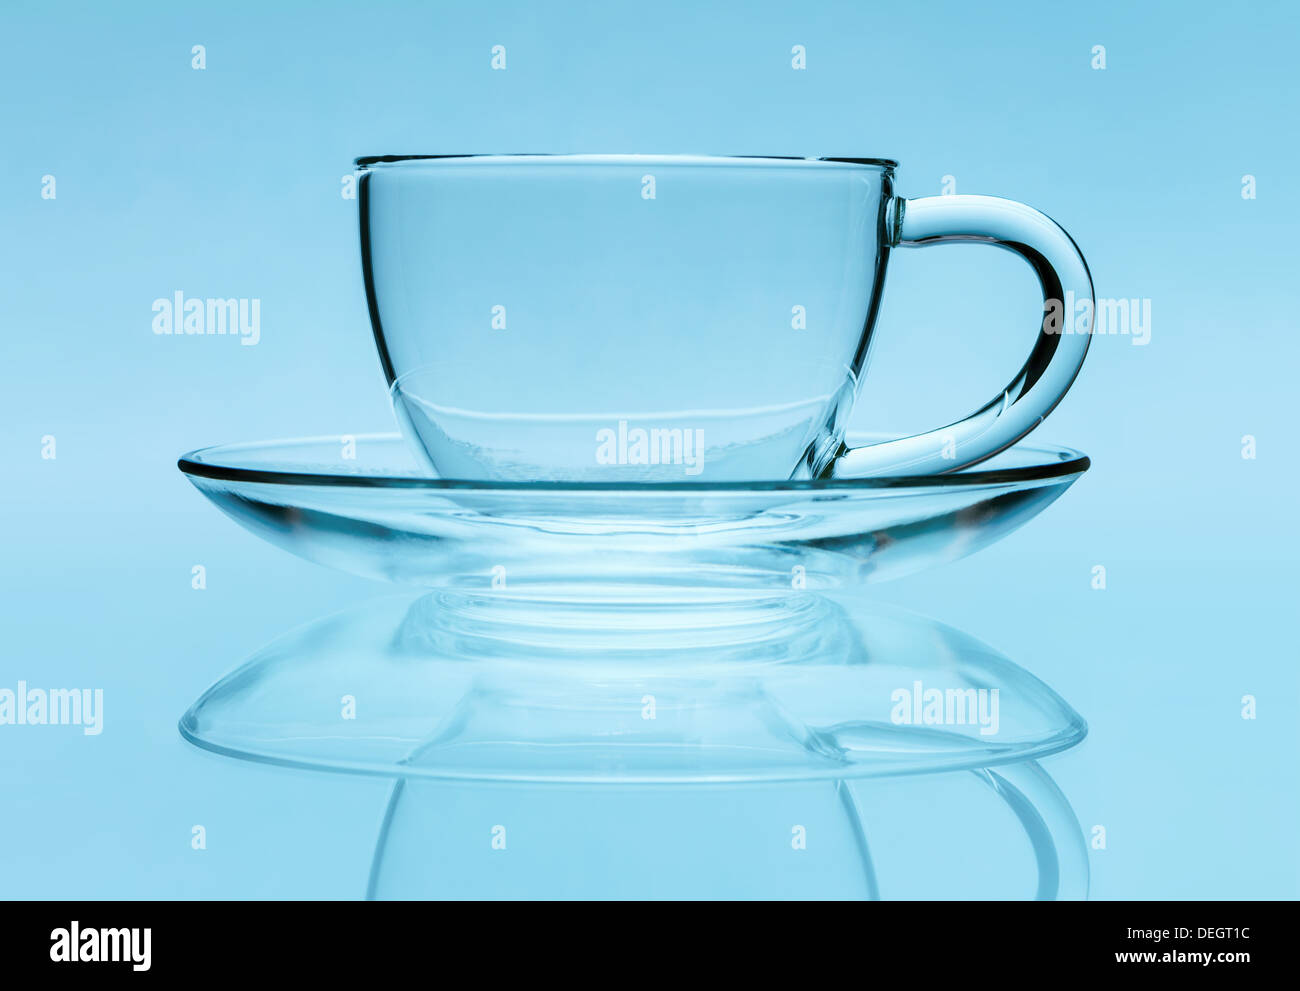 Transparent teacup and saucer over blue background - Stock Image